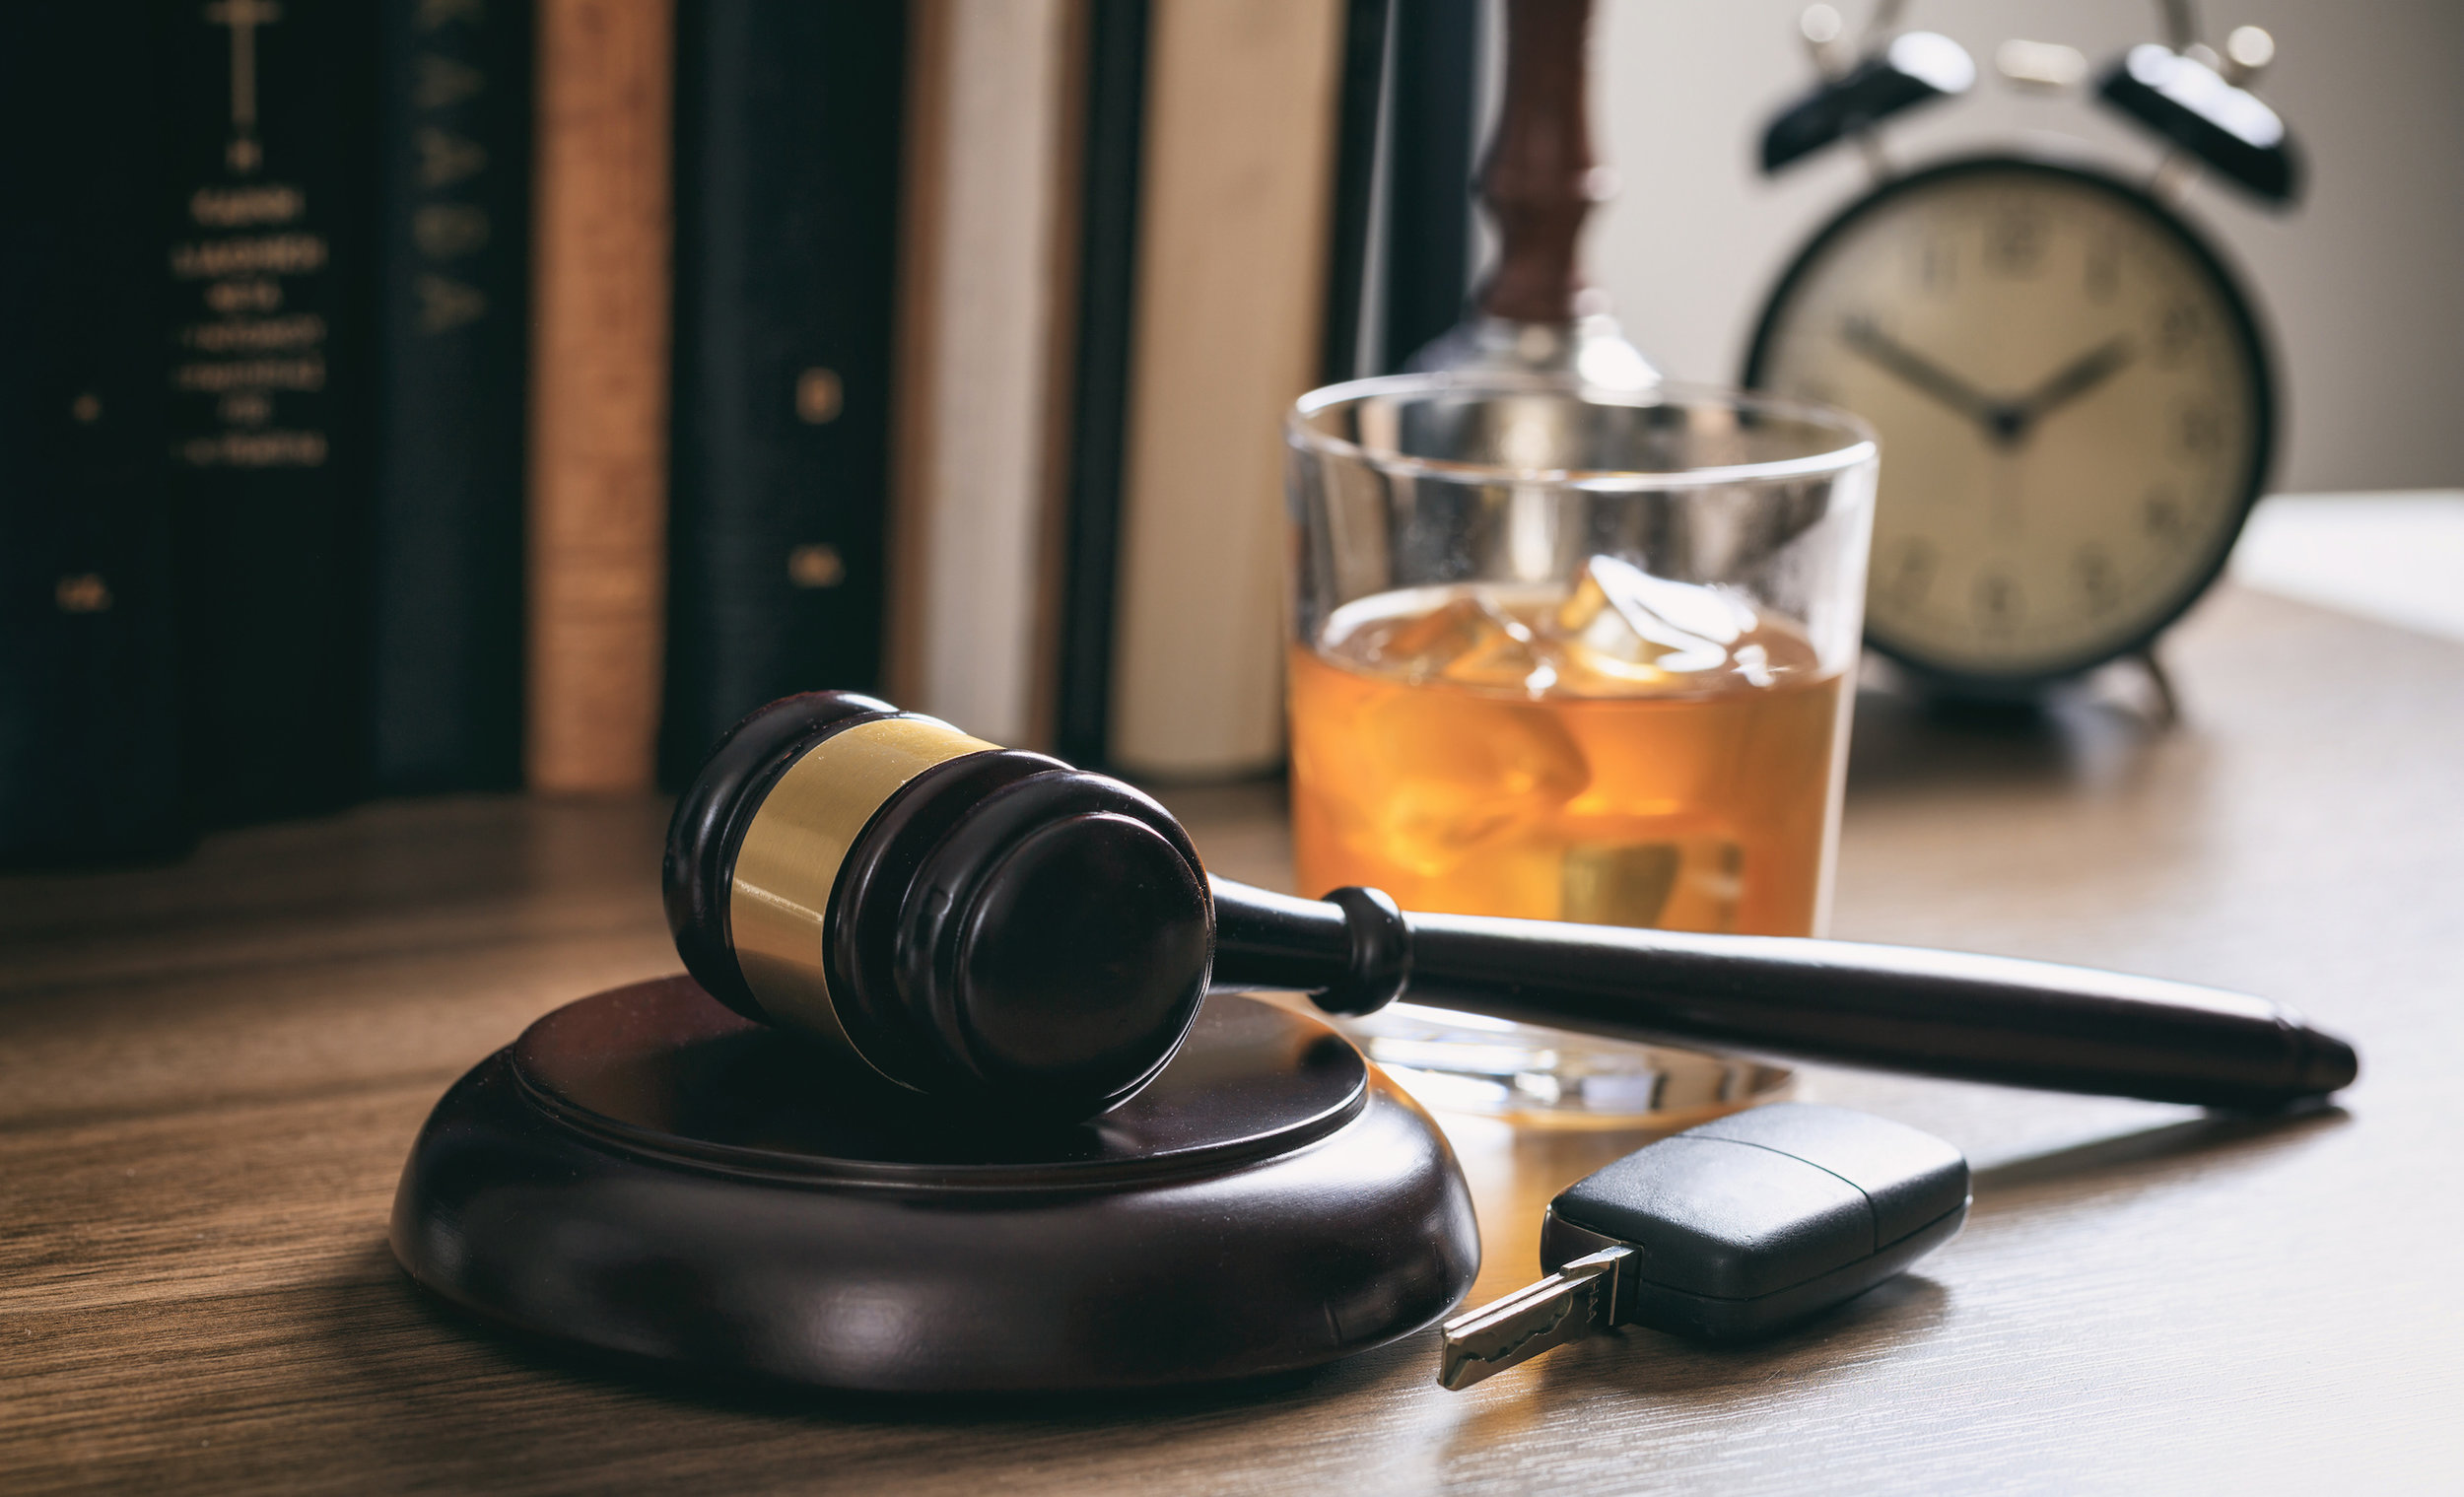 The Fourth Time is the Charm - But Not Really |The Law Offices of Bryan R. Kazarian - Los Angeles County Criminal Defense Attorneys - property, juvenile, petty theft, DUI, misdemeanor, and felony Criminal Law